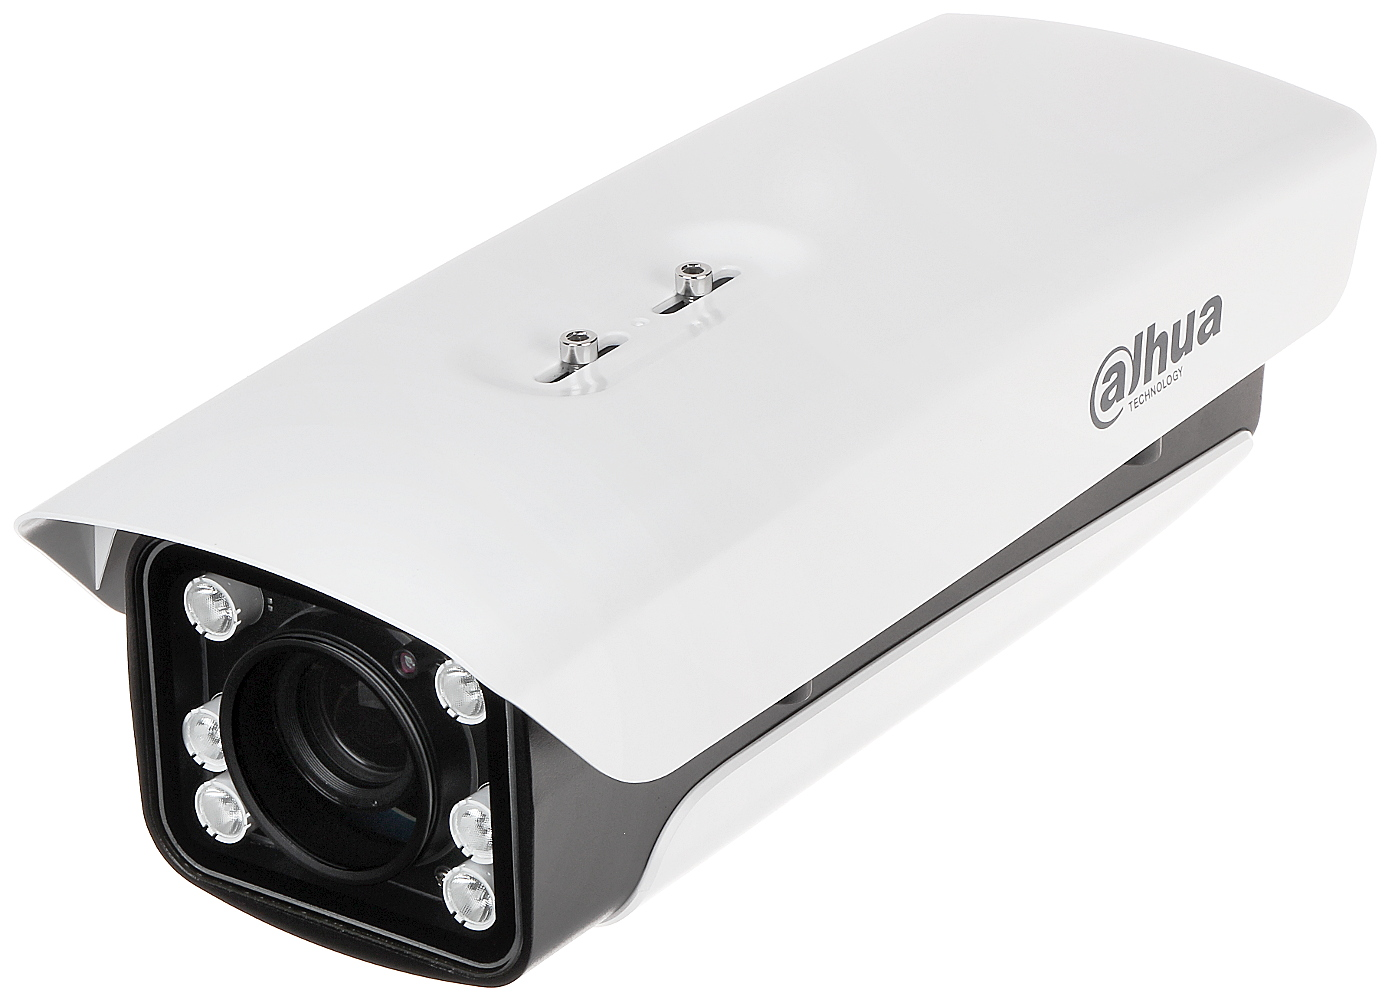 IP CAMERA ANPR DH-ITC237-PU1B-IR - 1080p 5     50 mm D